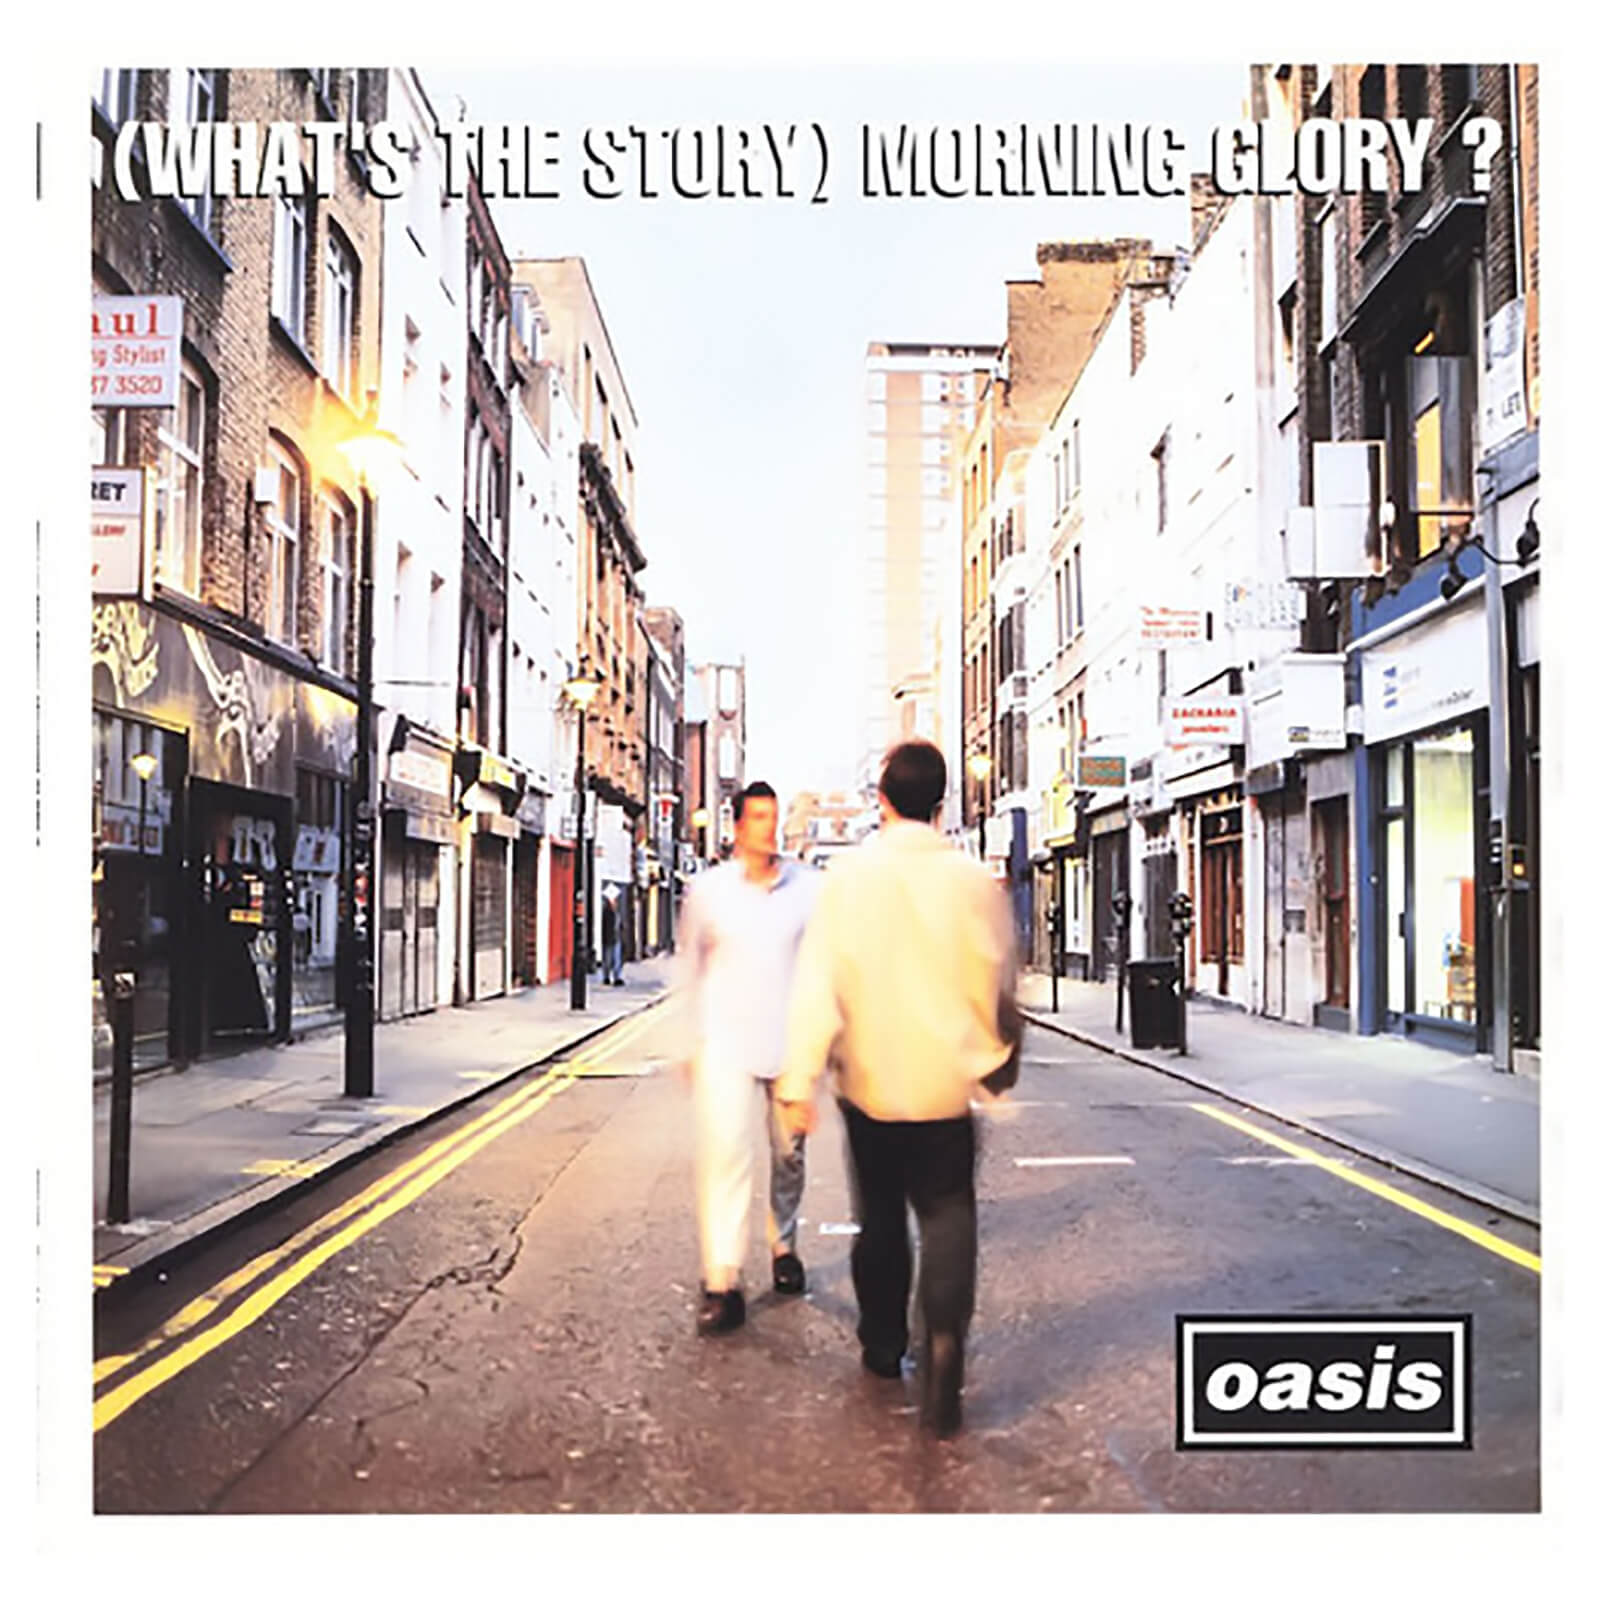 Oasis - (Whats The Story) Morning Glory - Vinyl